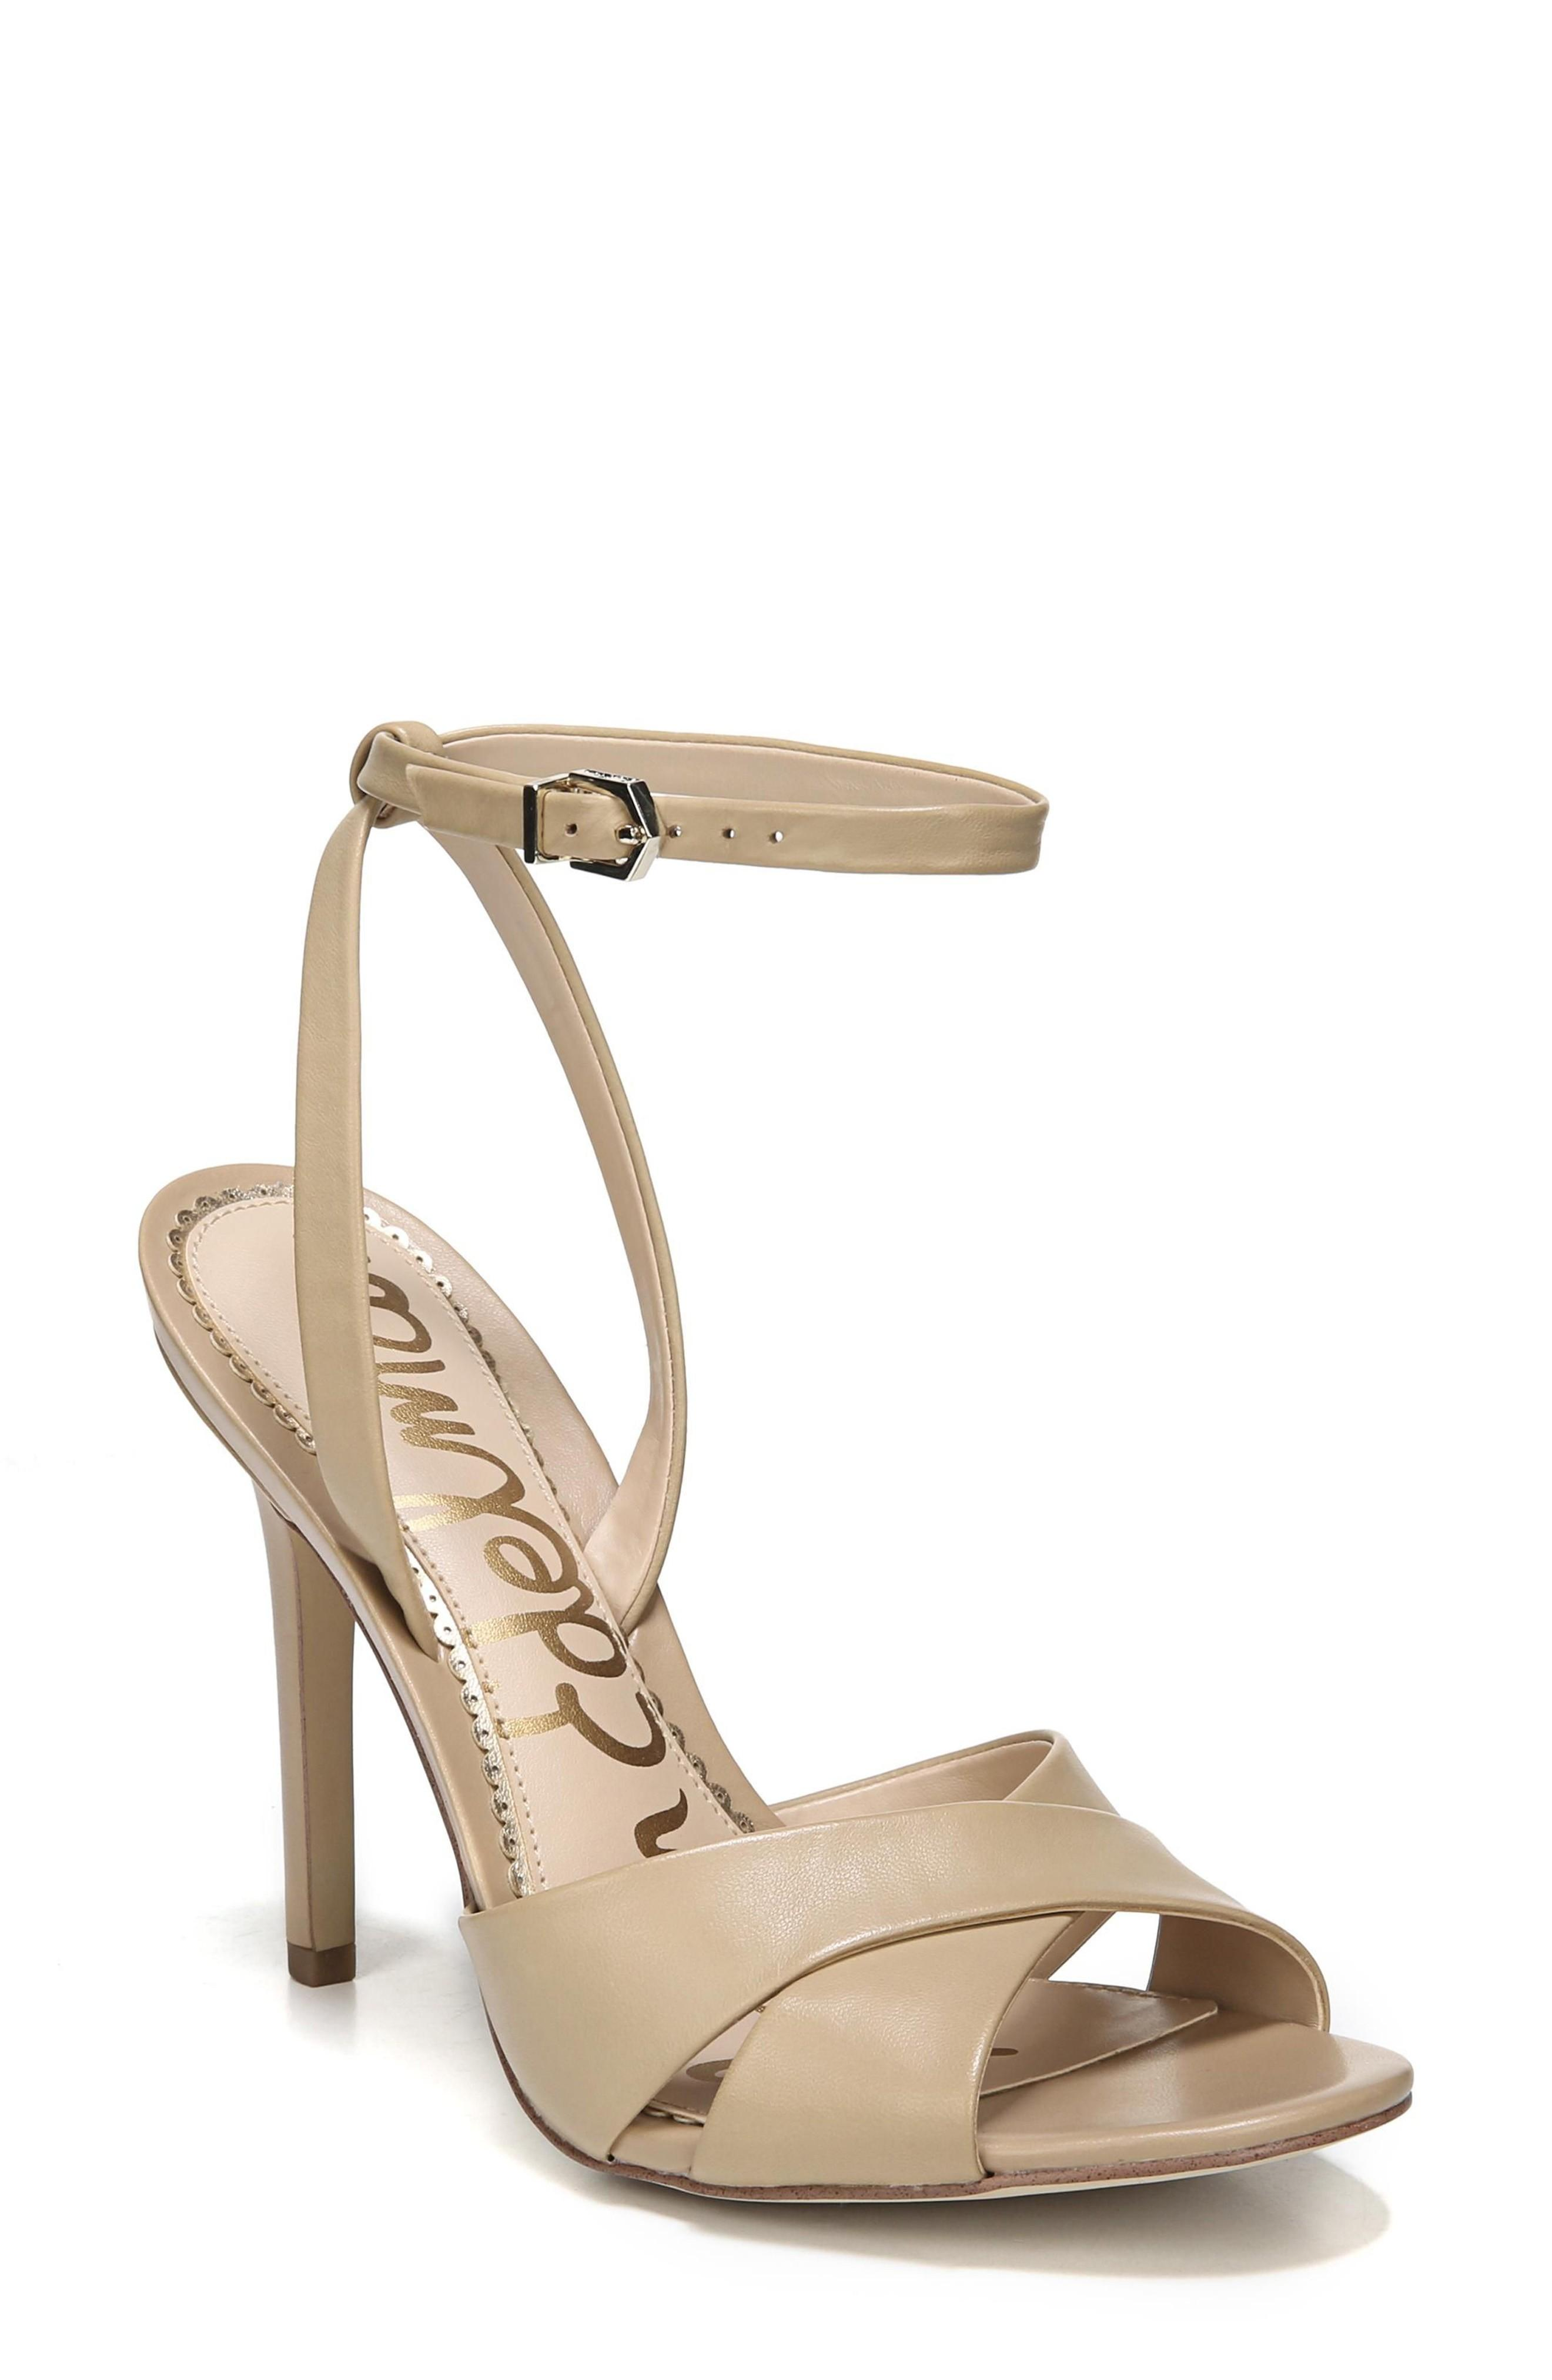 14533603eb9a A svelte ankle strap secures your foot in this leg-lengthening sandal with  a minimalist silhouette. Style Name  Sam Edelman Aly Ankle Strap Sandal  (Women).